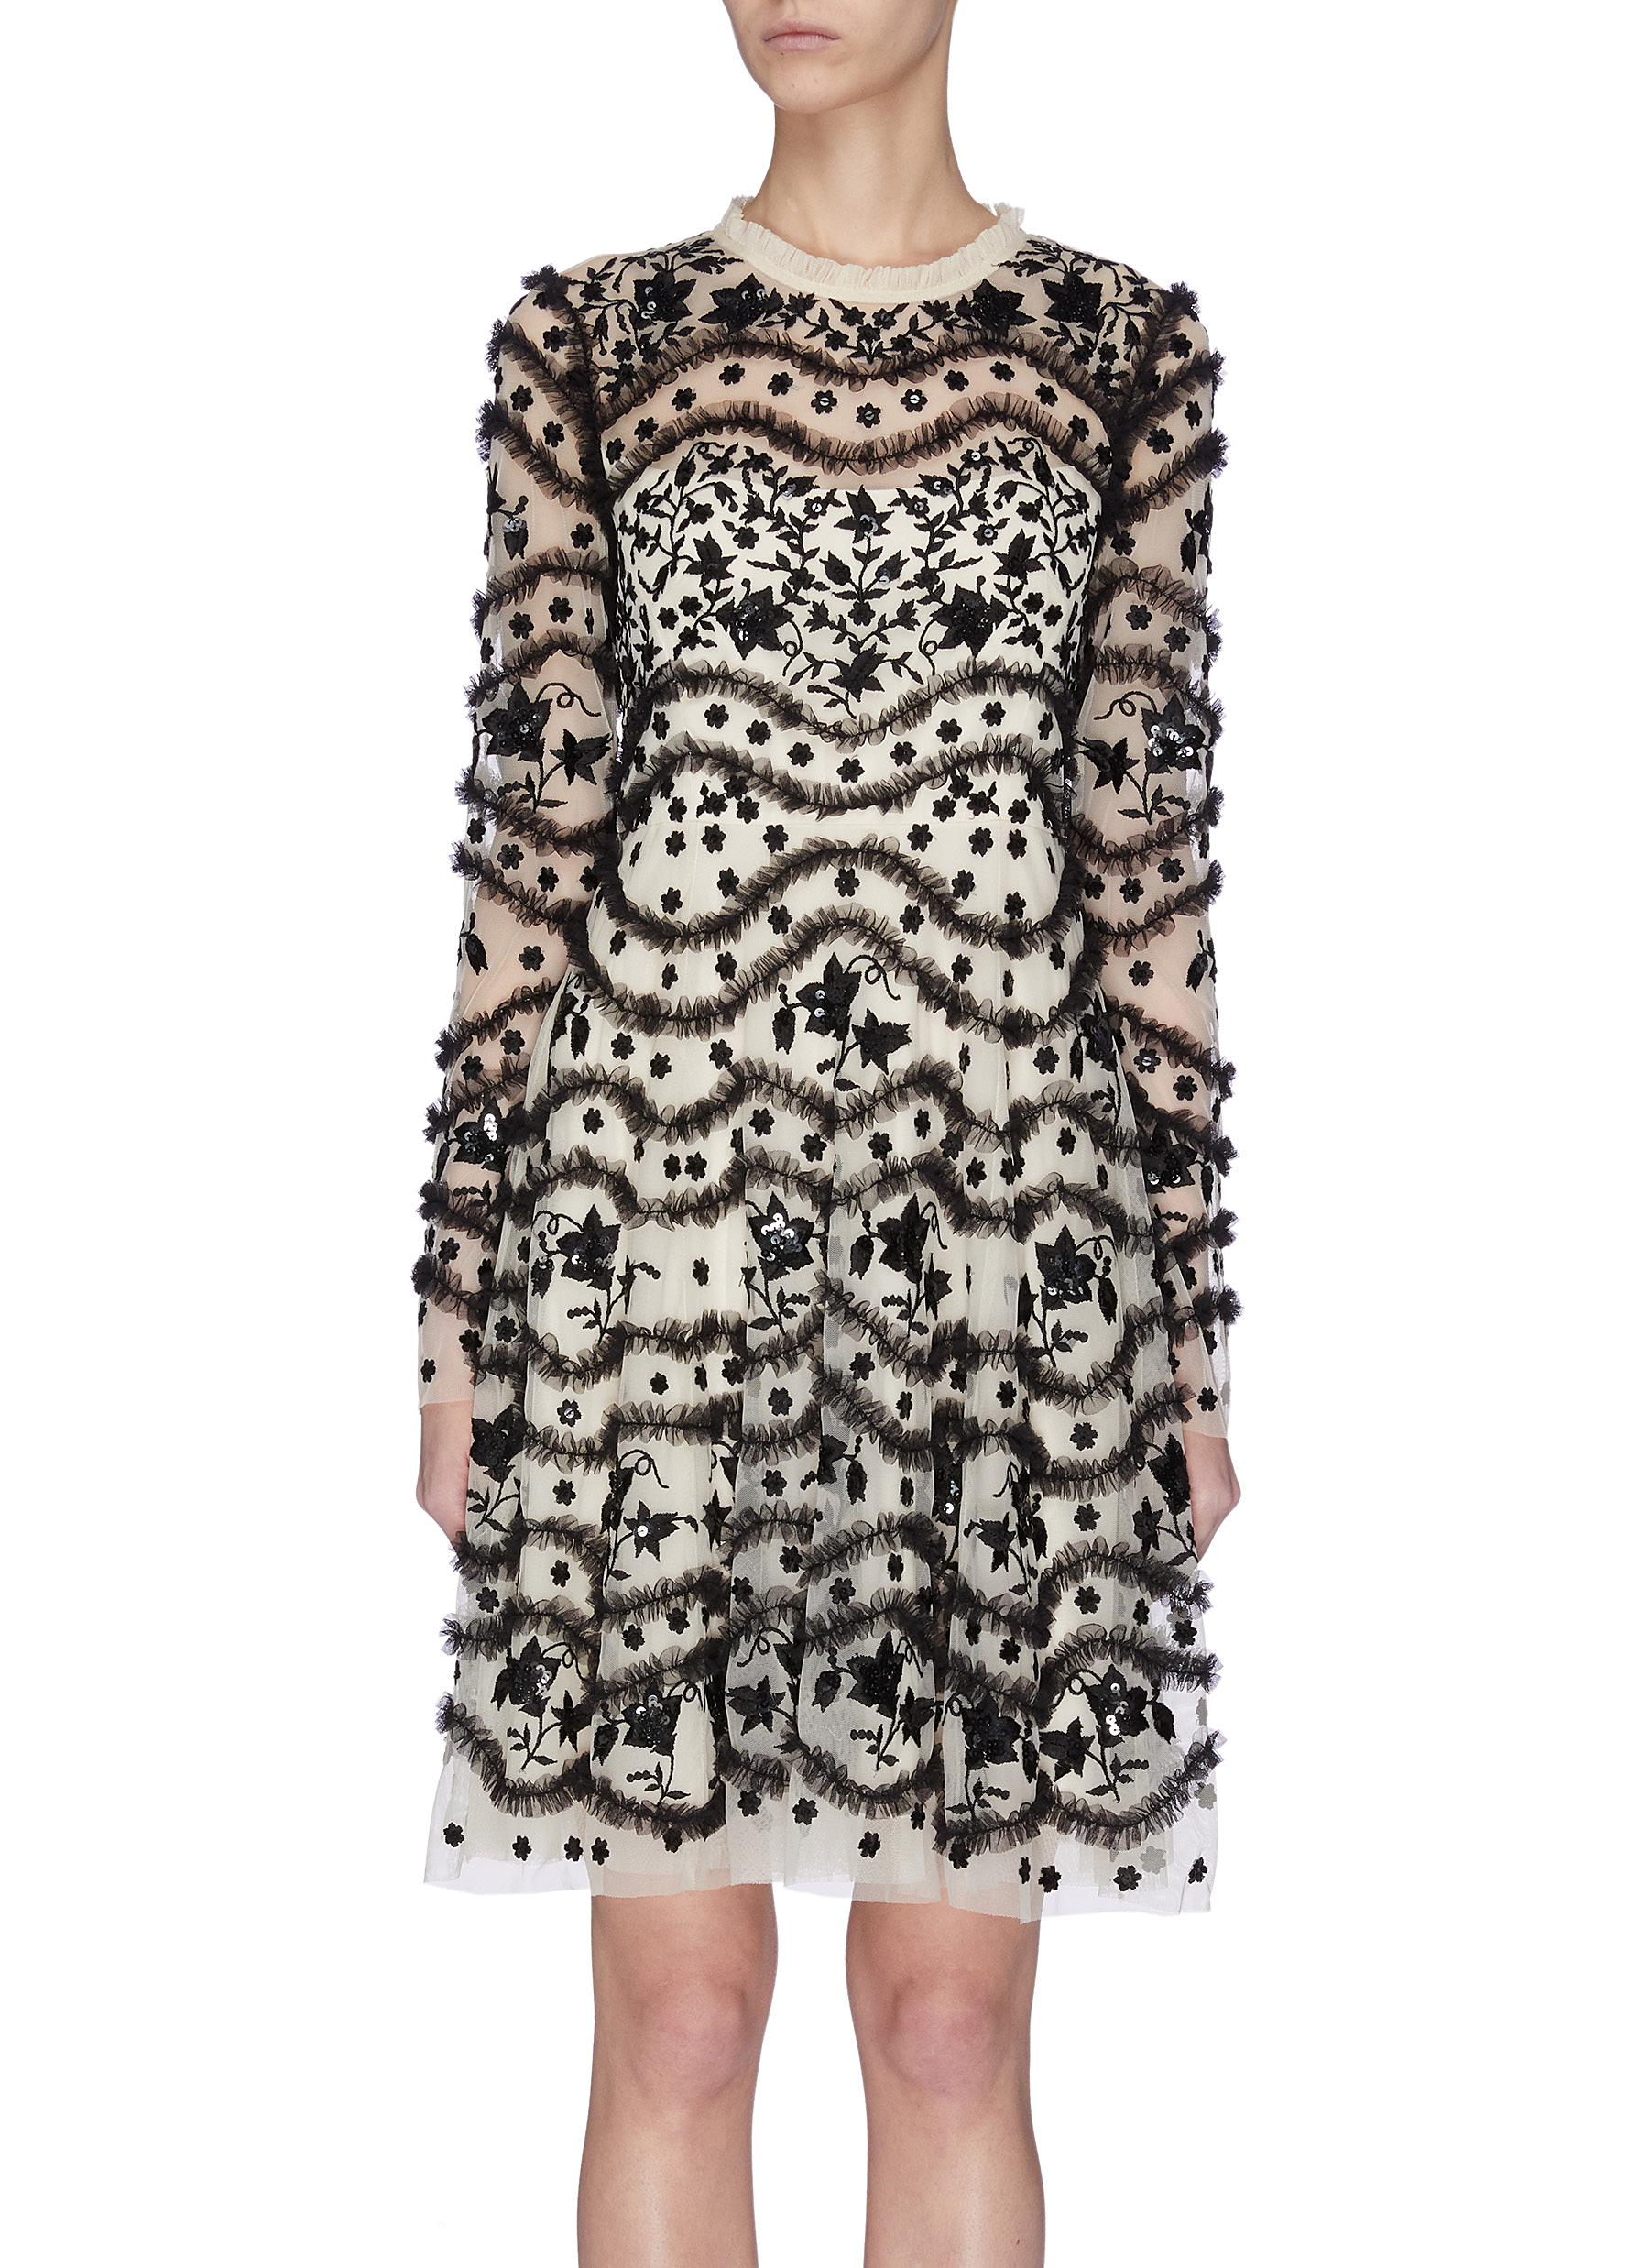 Buy Needle & Thread Dresses 'Bloom' sequin embroidered ruffle dress